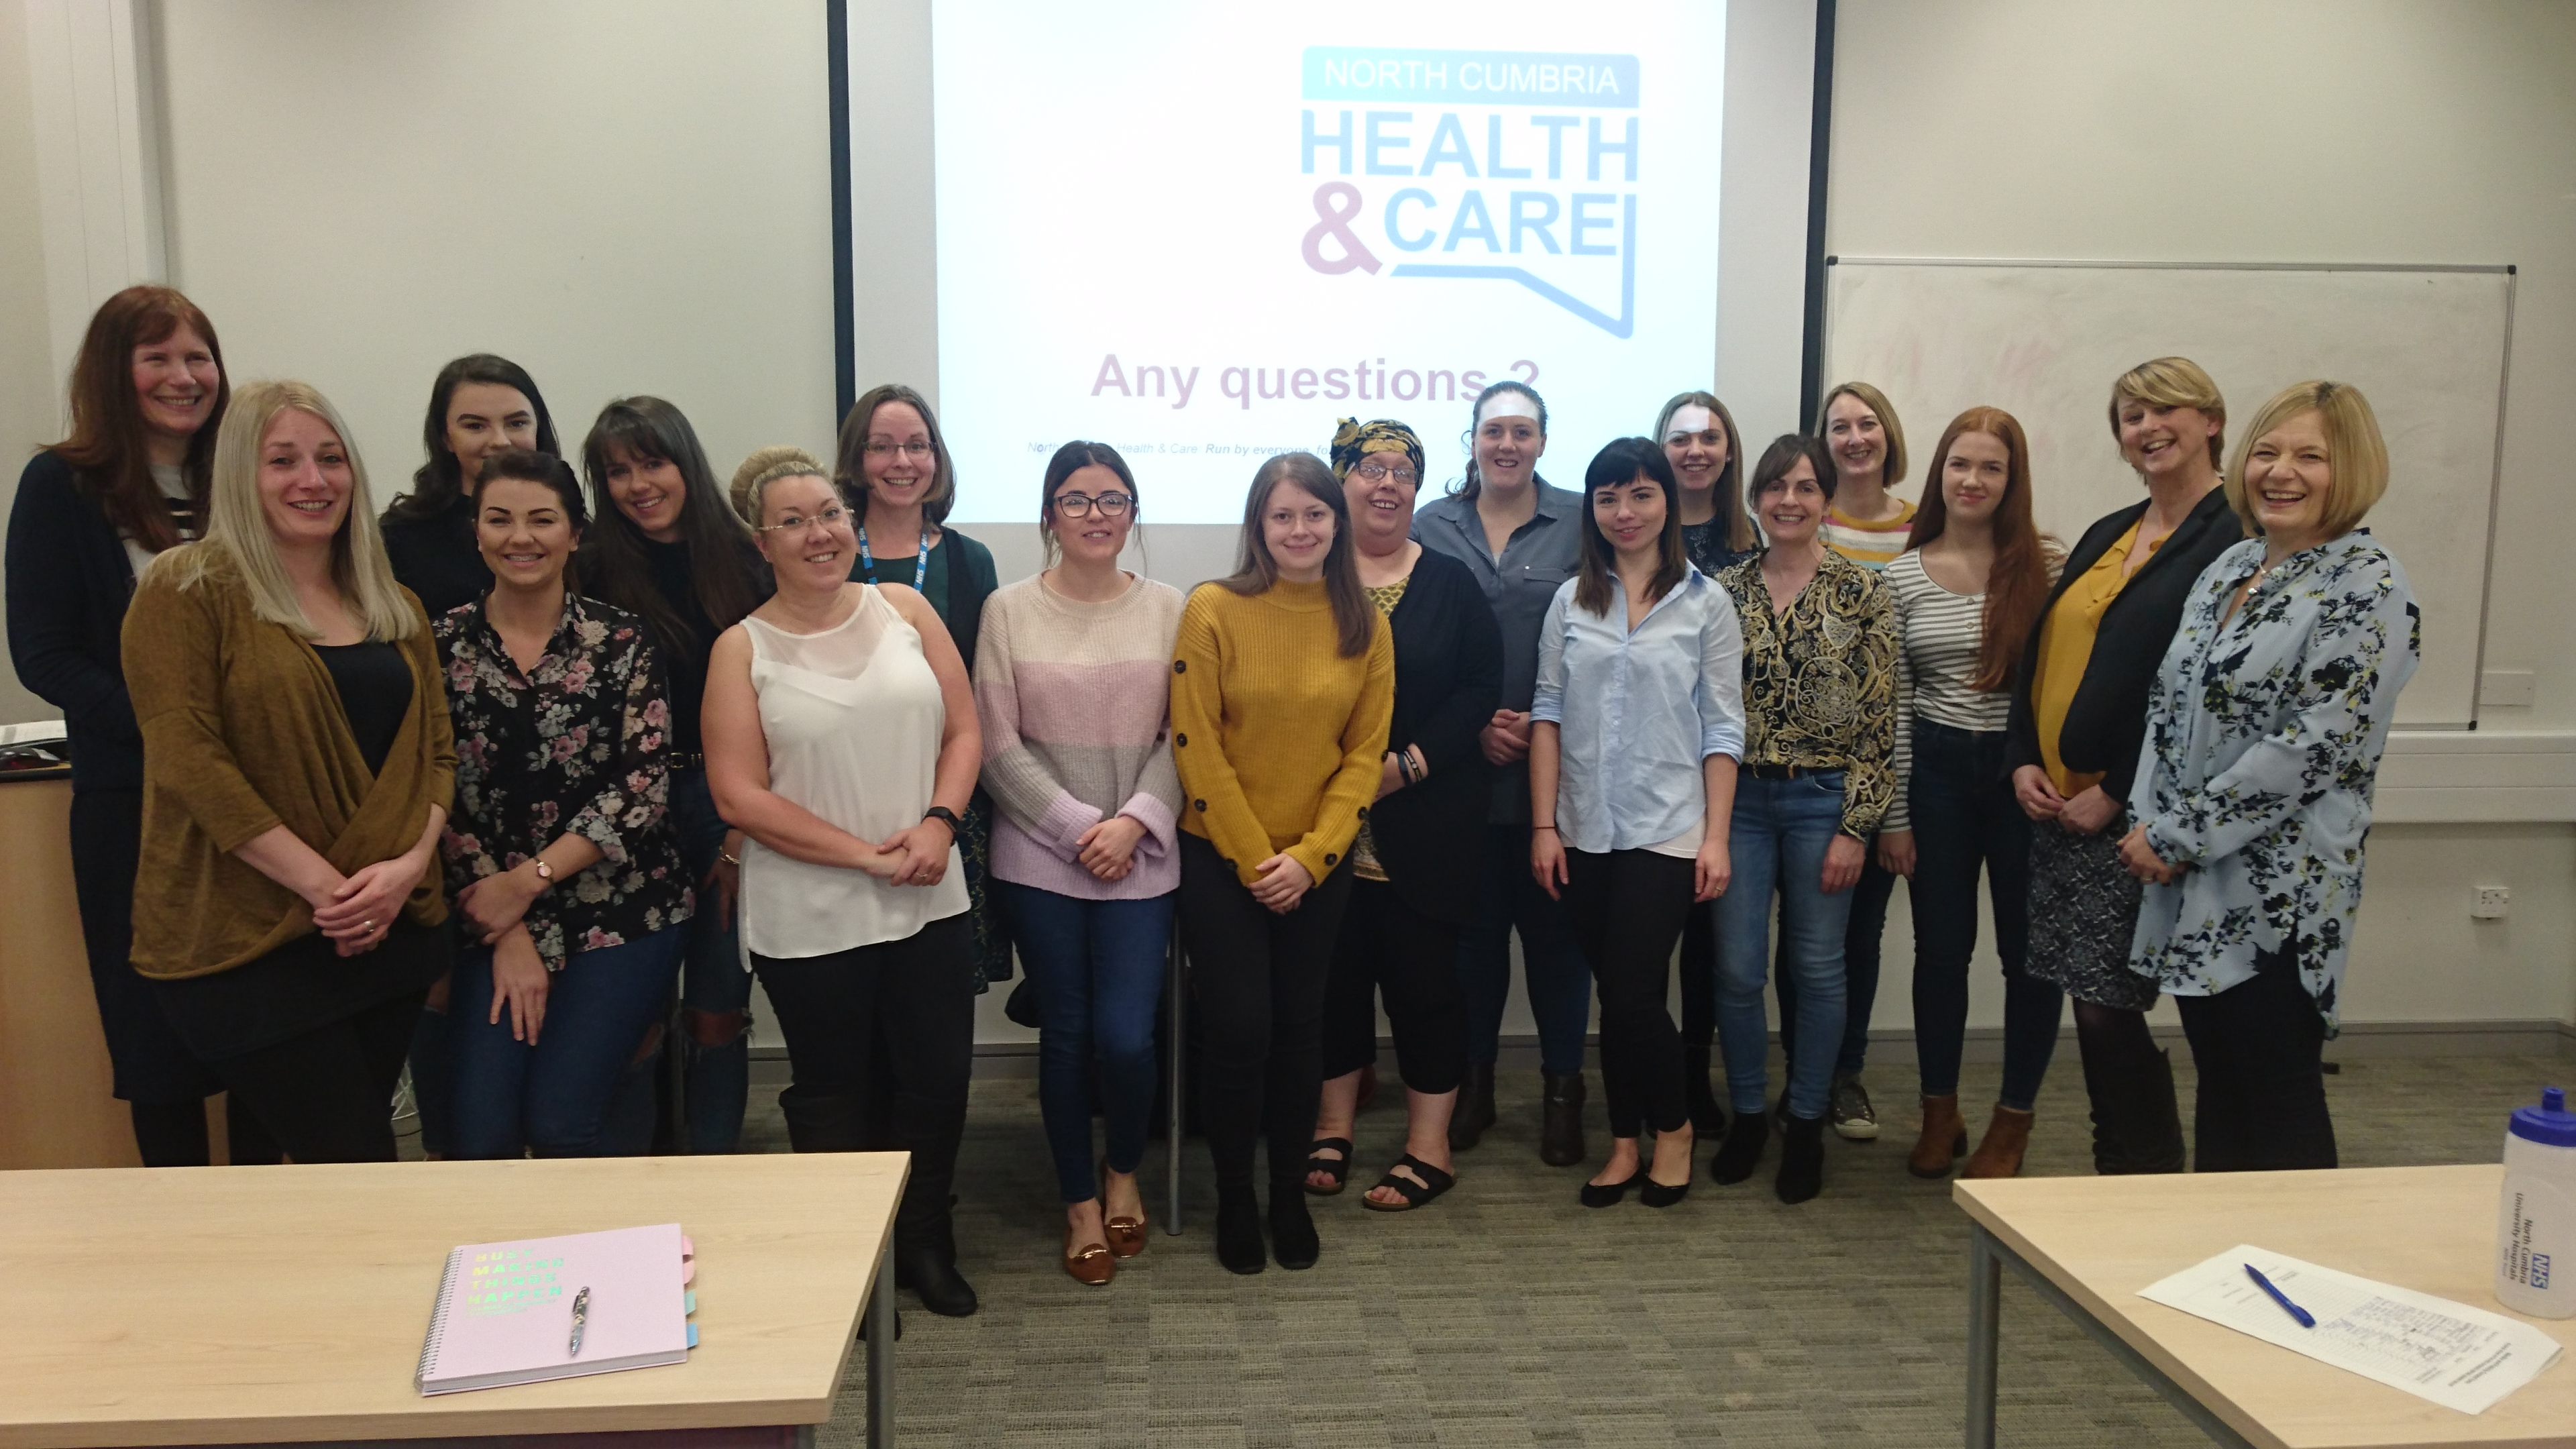 More NHS staff learning and earning in apprenticeships